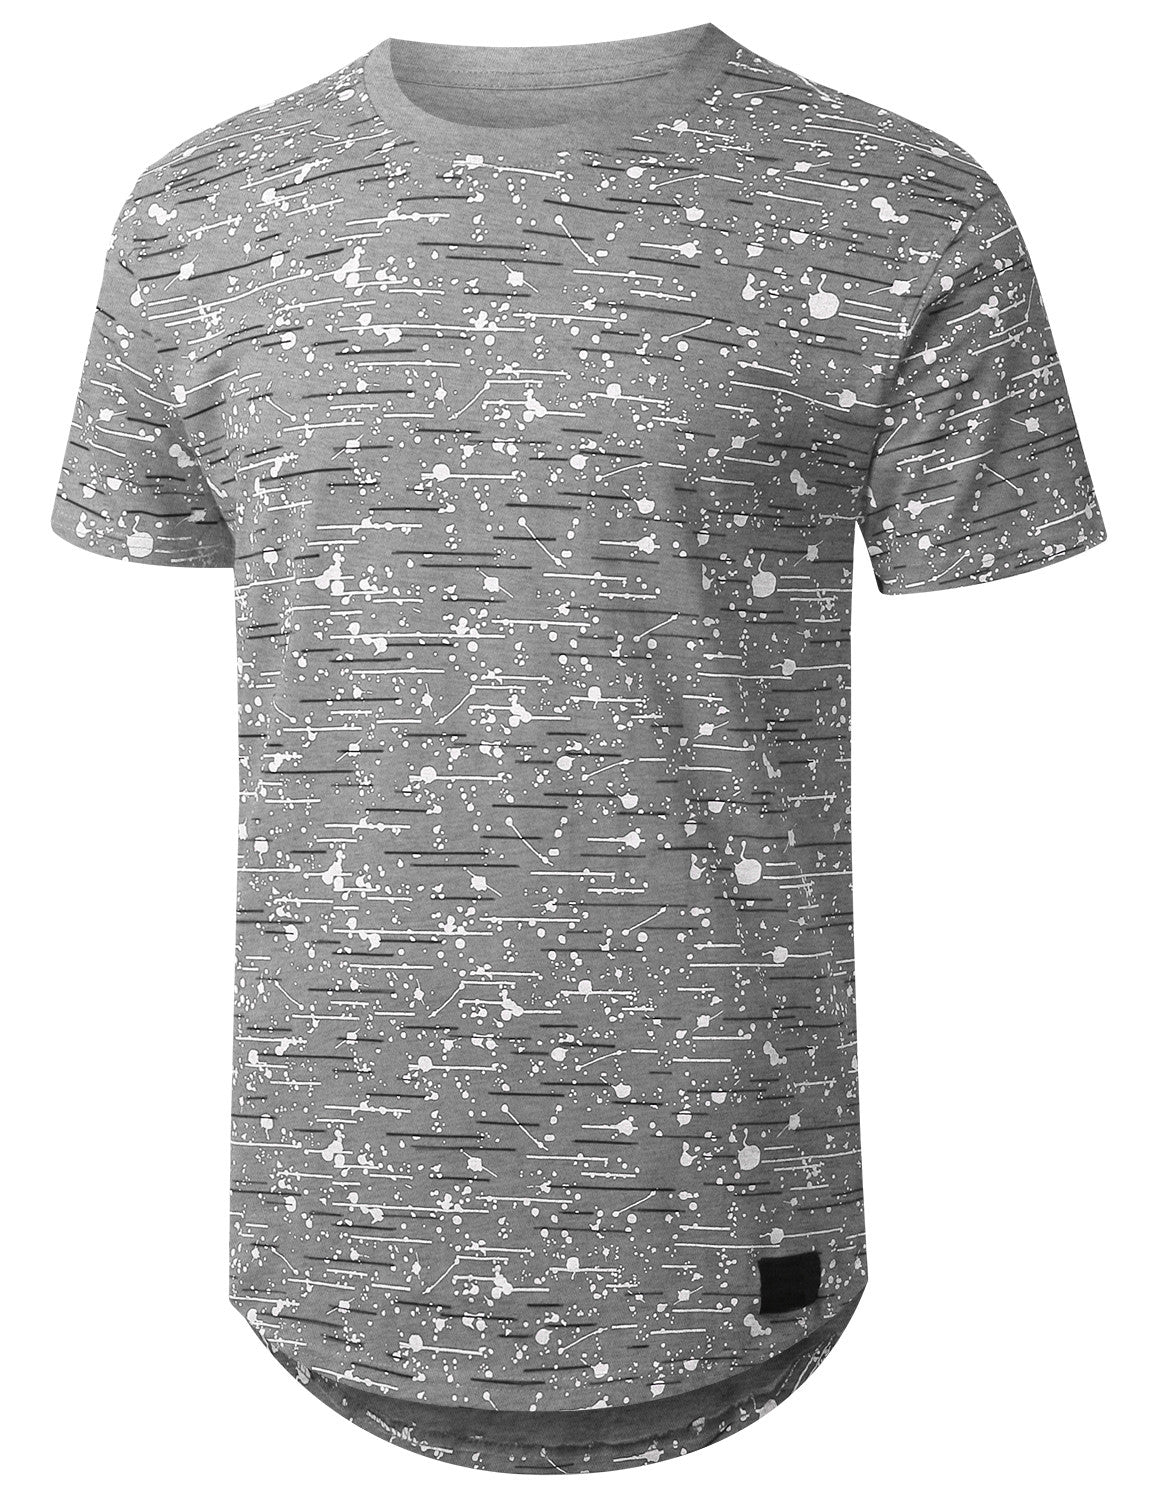 HGRAY Color Texture Longline Tshirt - URBANCREWS